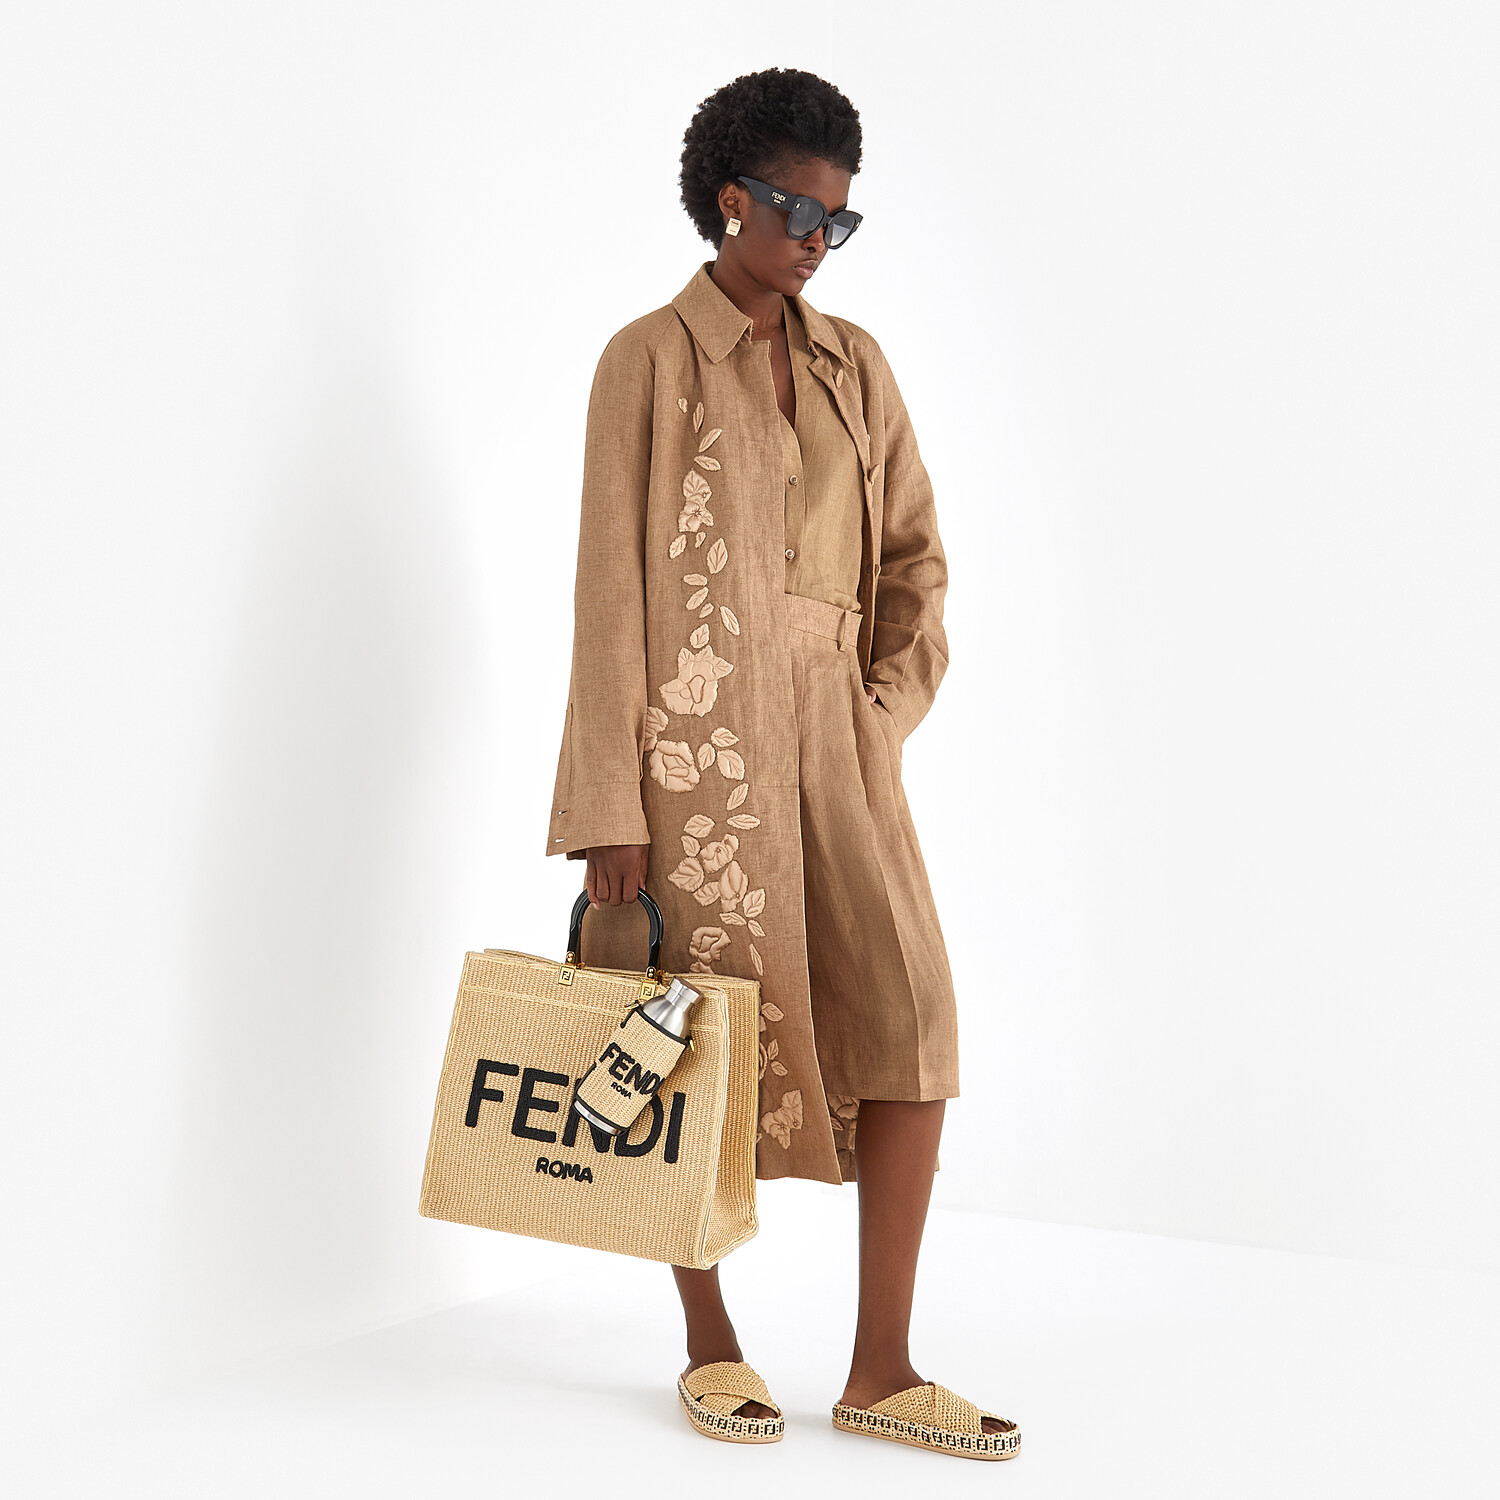 FENDI FENDI SUNSHINE LARGE - Woven straw shopper - view 2 detail